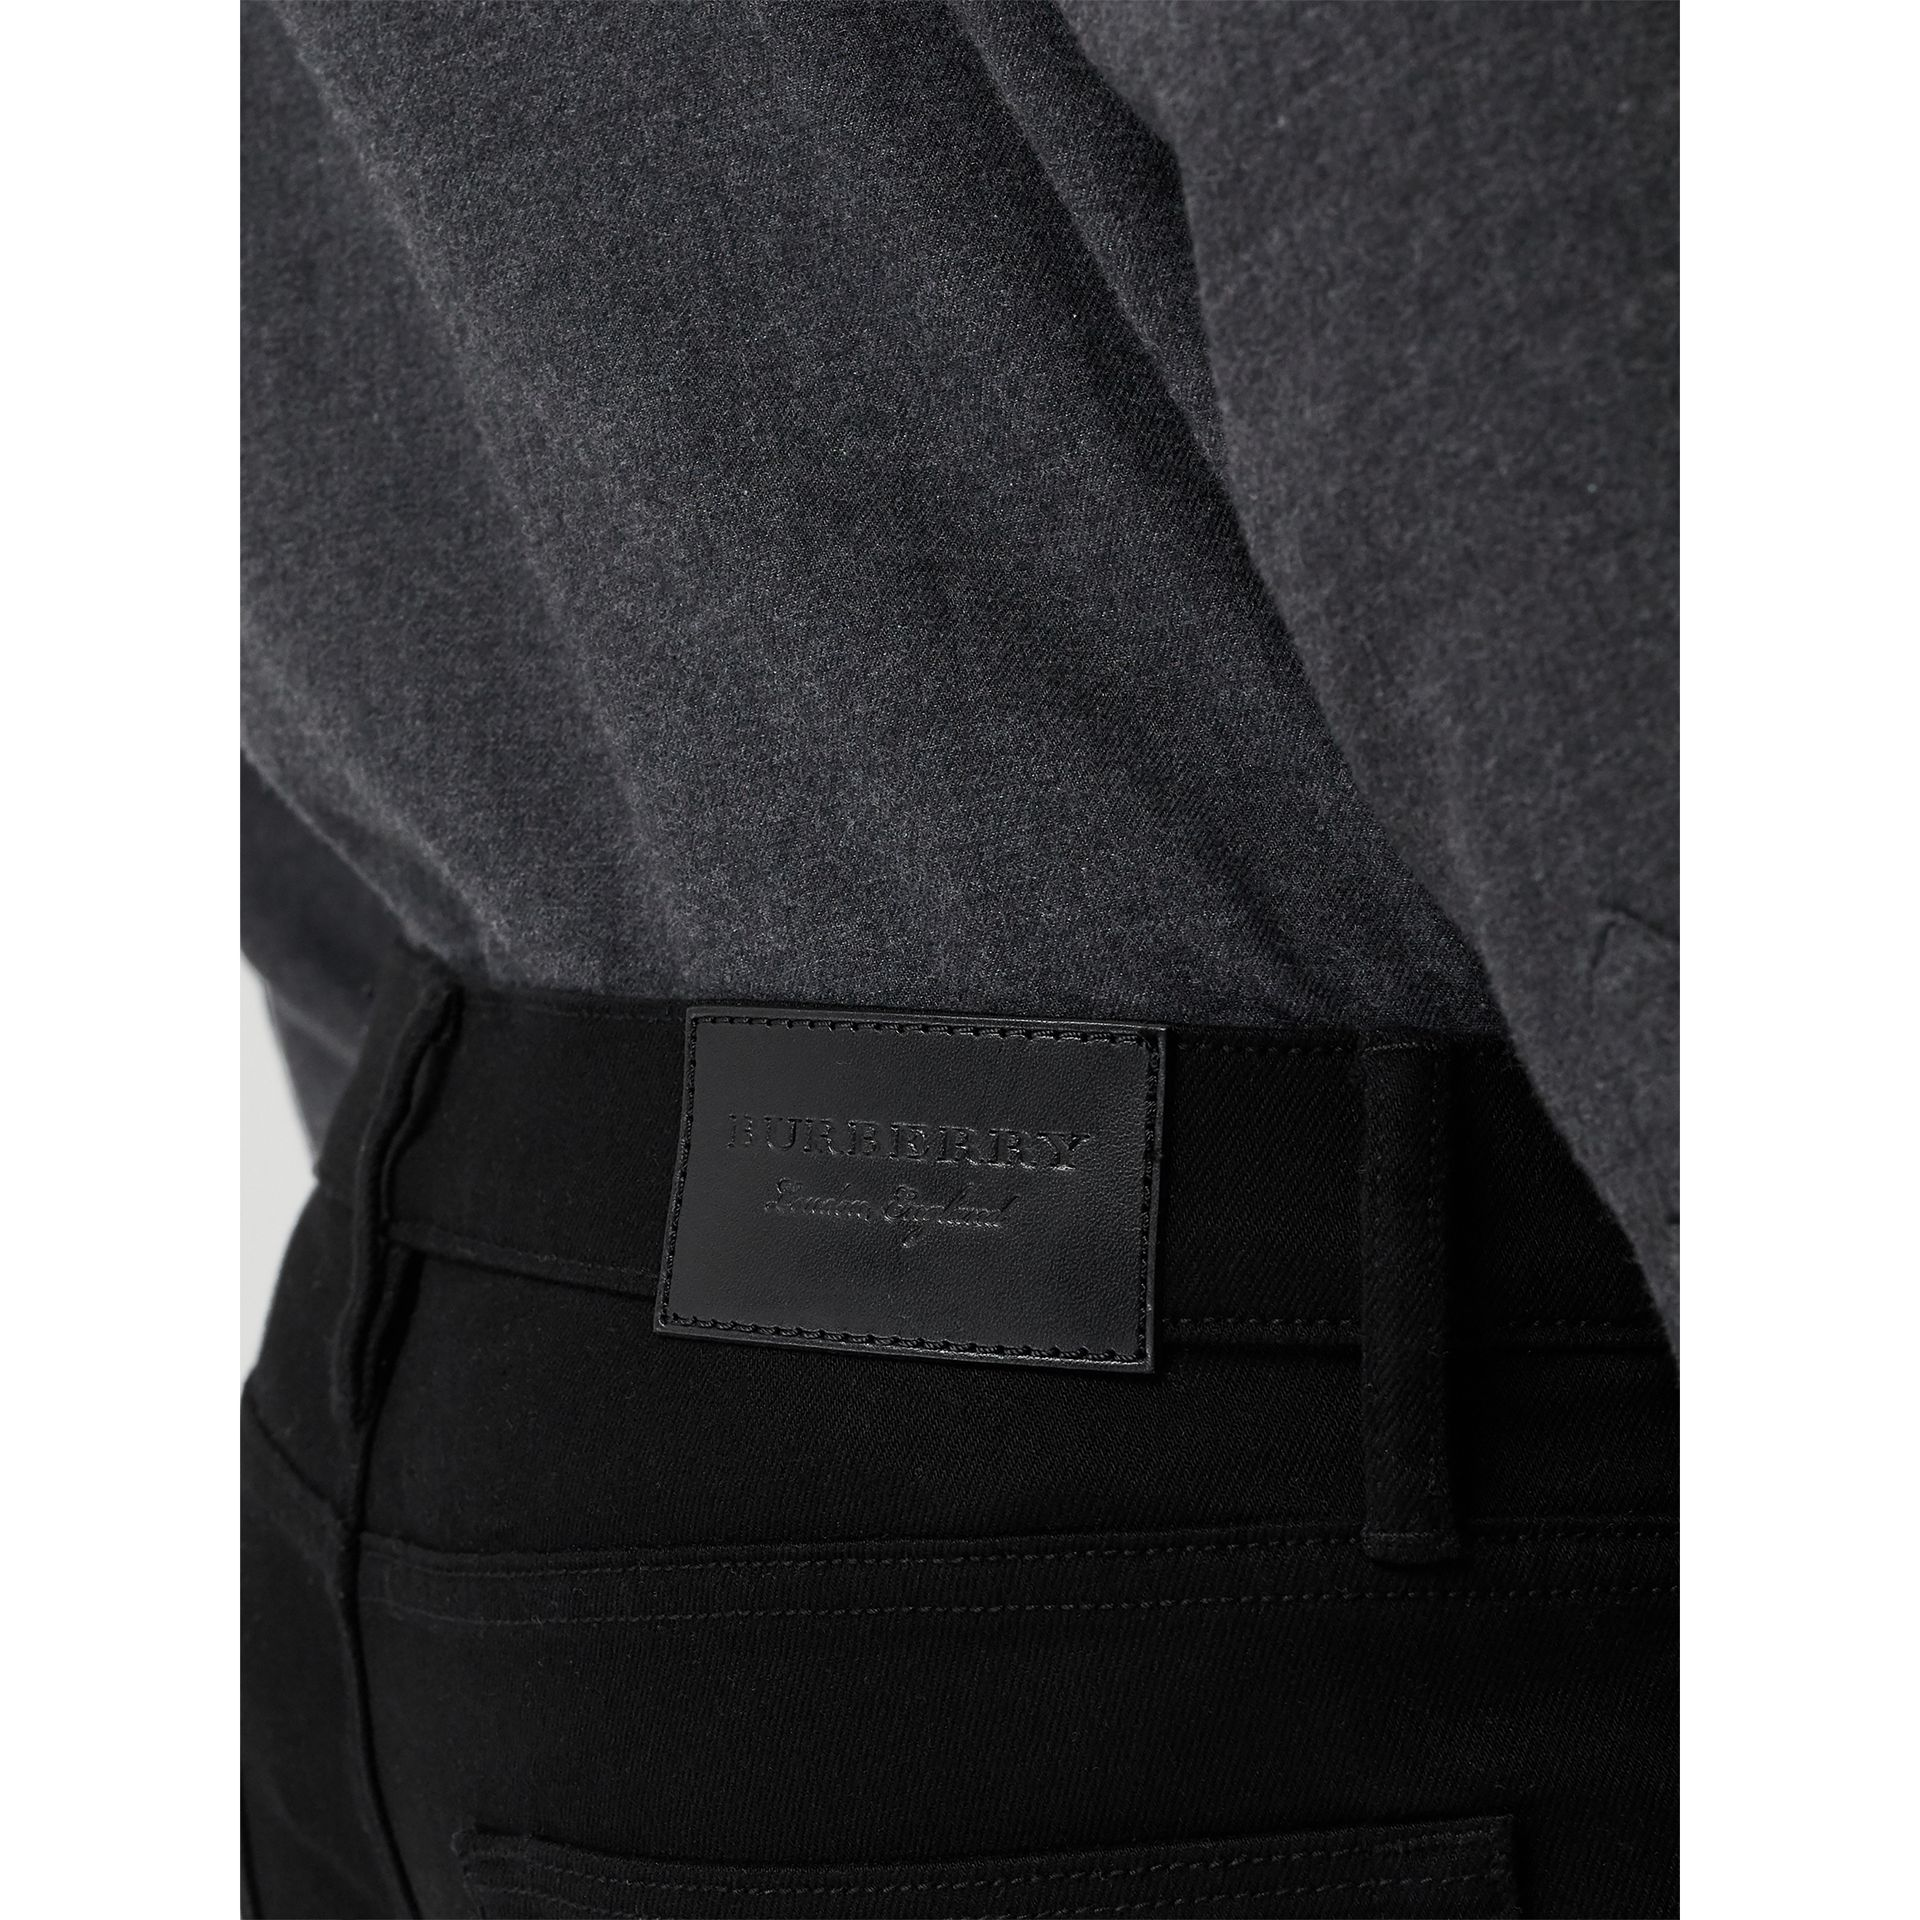 Jean denim extensible de coupe droite (Noir) - Homme | Burberry Canada - photo de la galerie 1